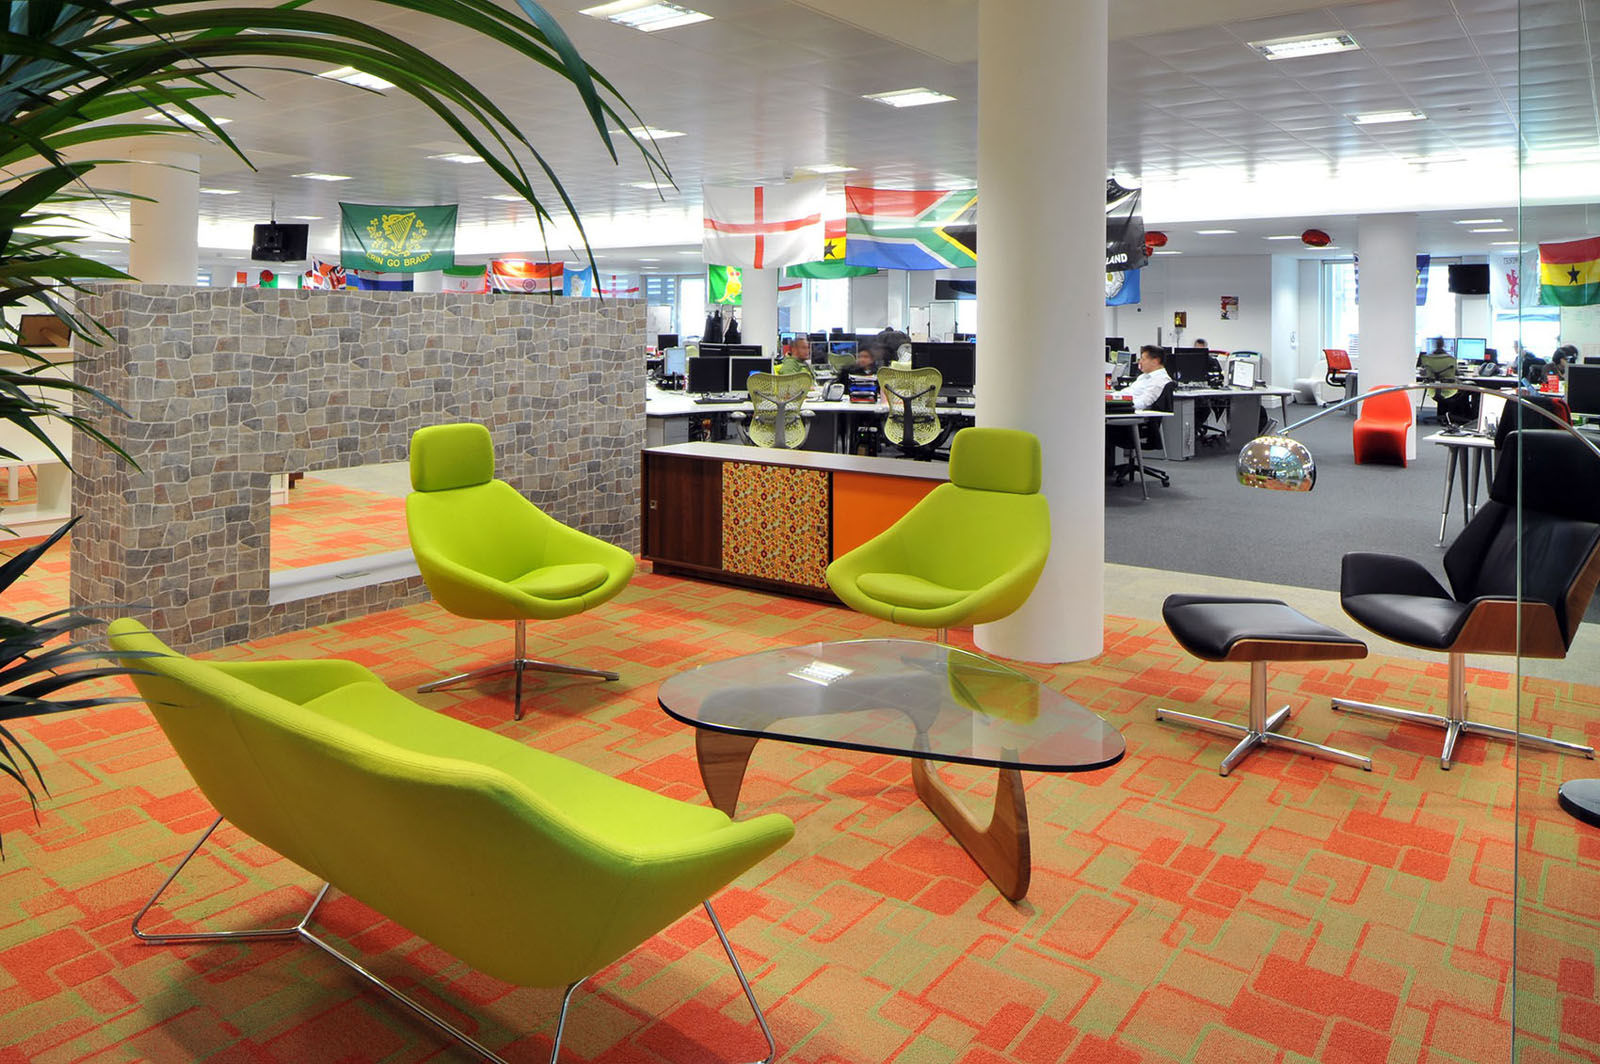 Inspiring british office interior design at rackspace for Cool office rooms